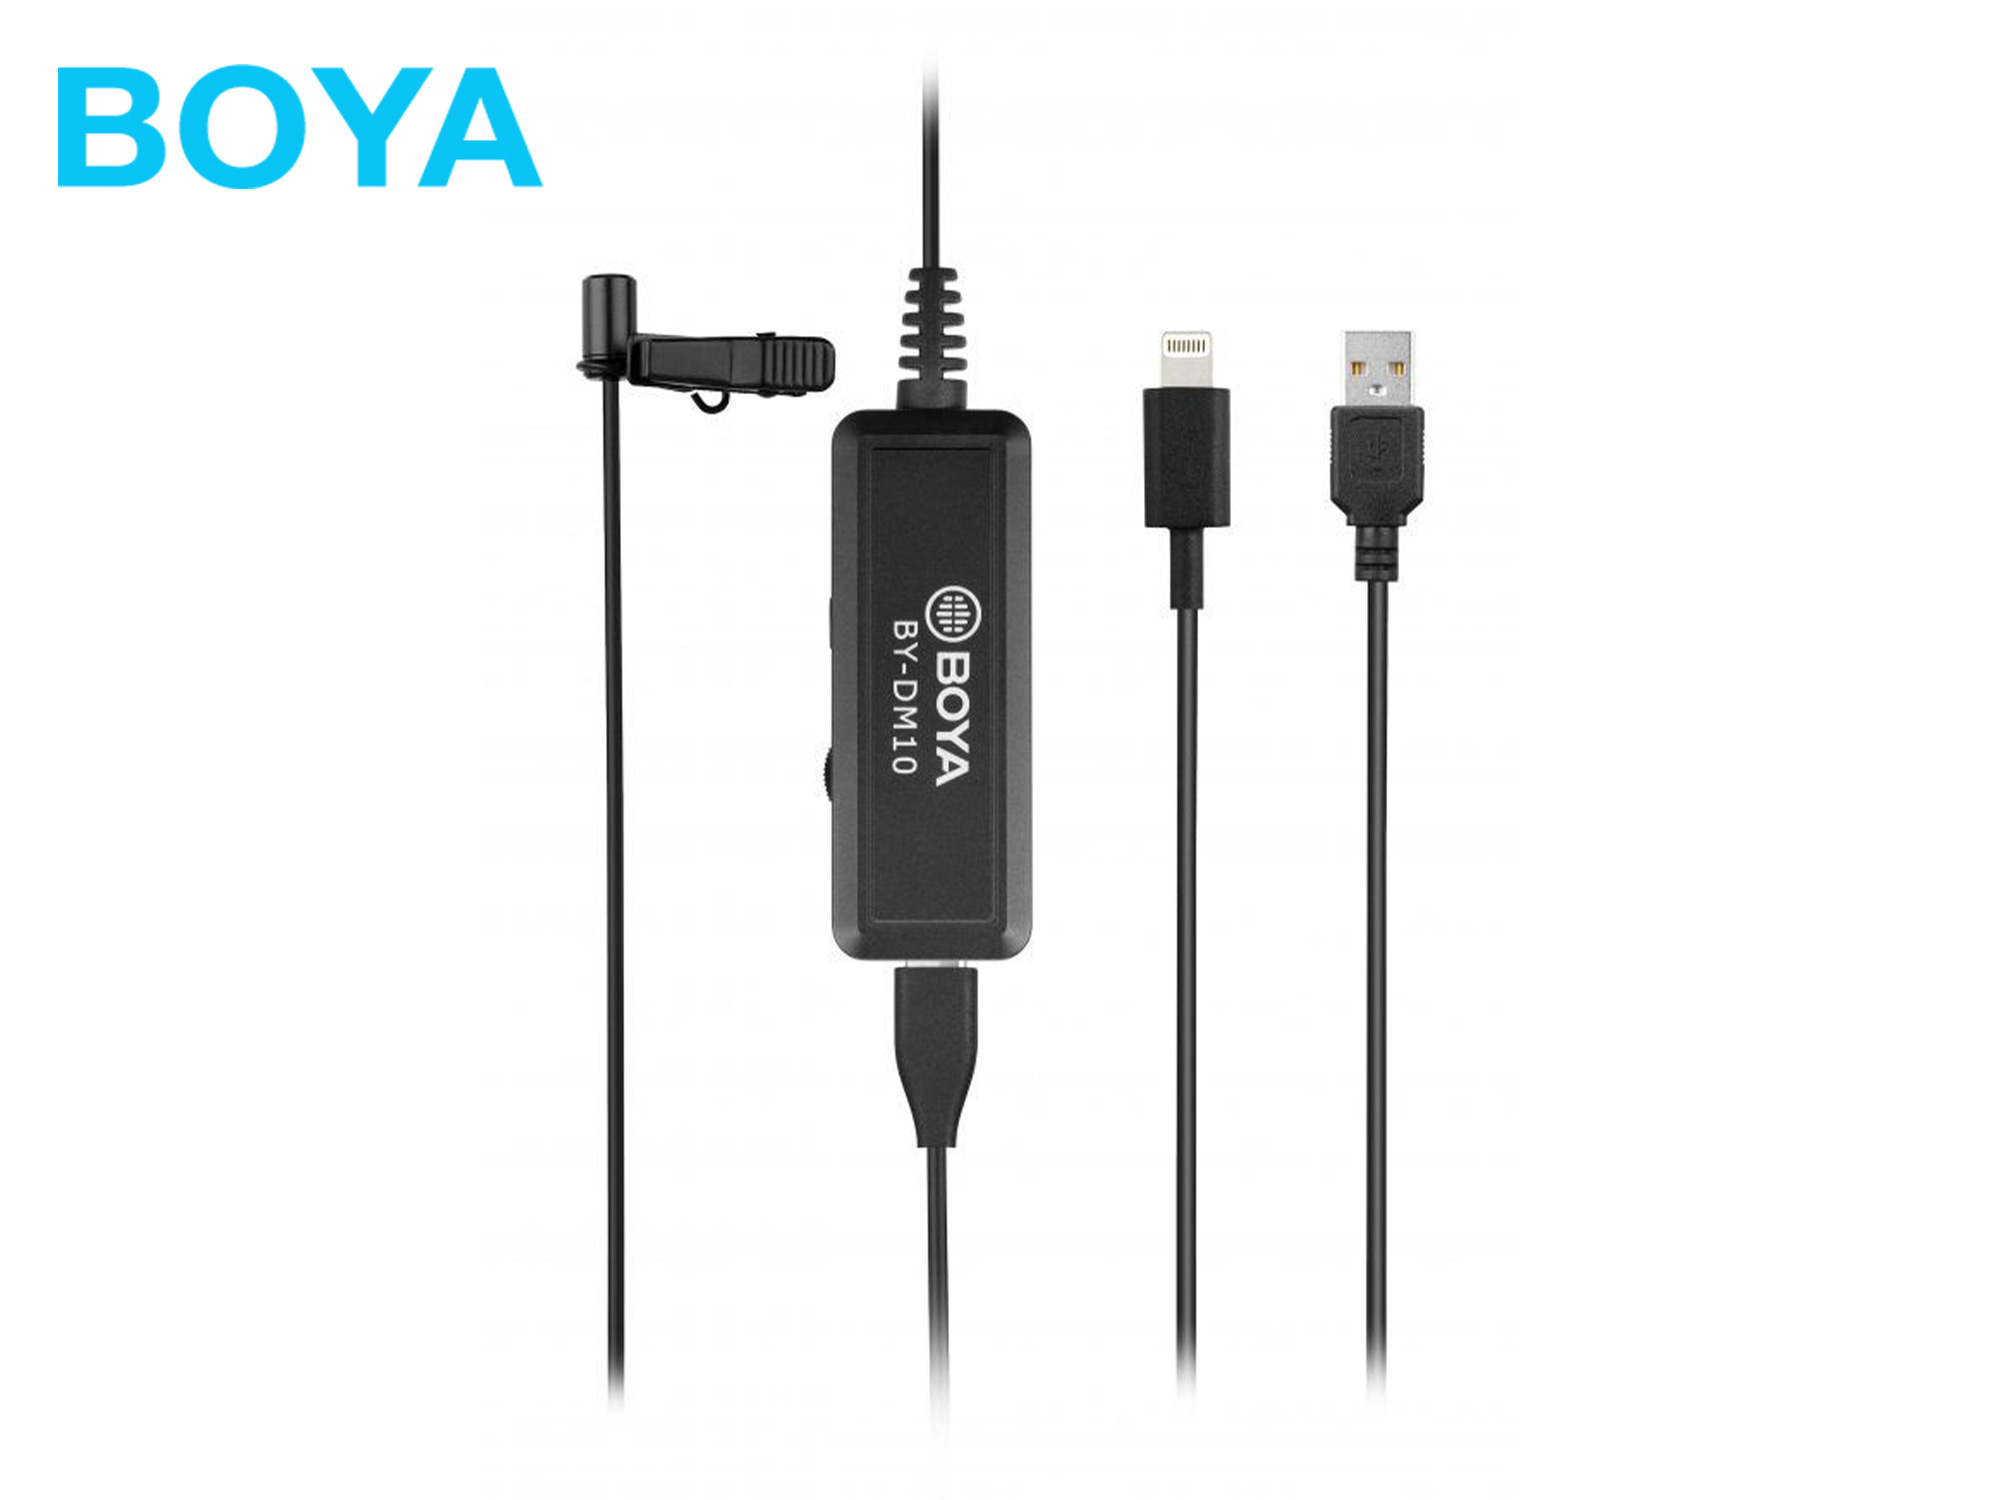 Boya BY-DM10 Digital Lavalier Microphone For IOS/Mac/Windows